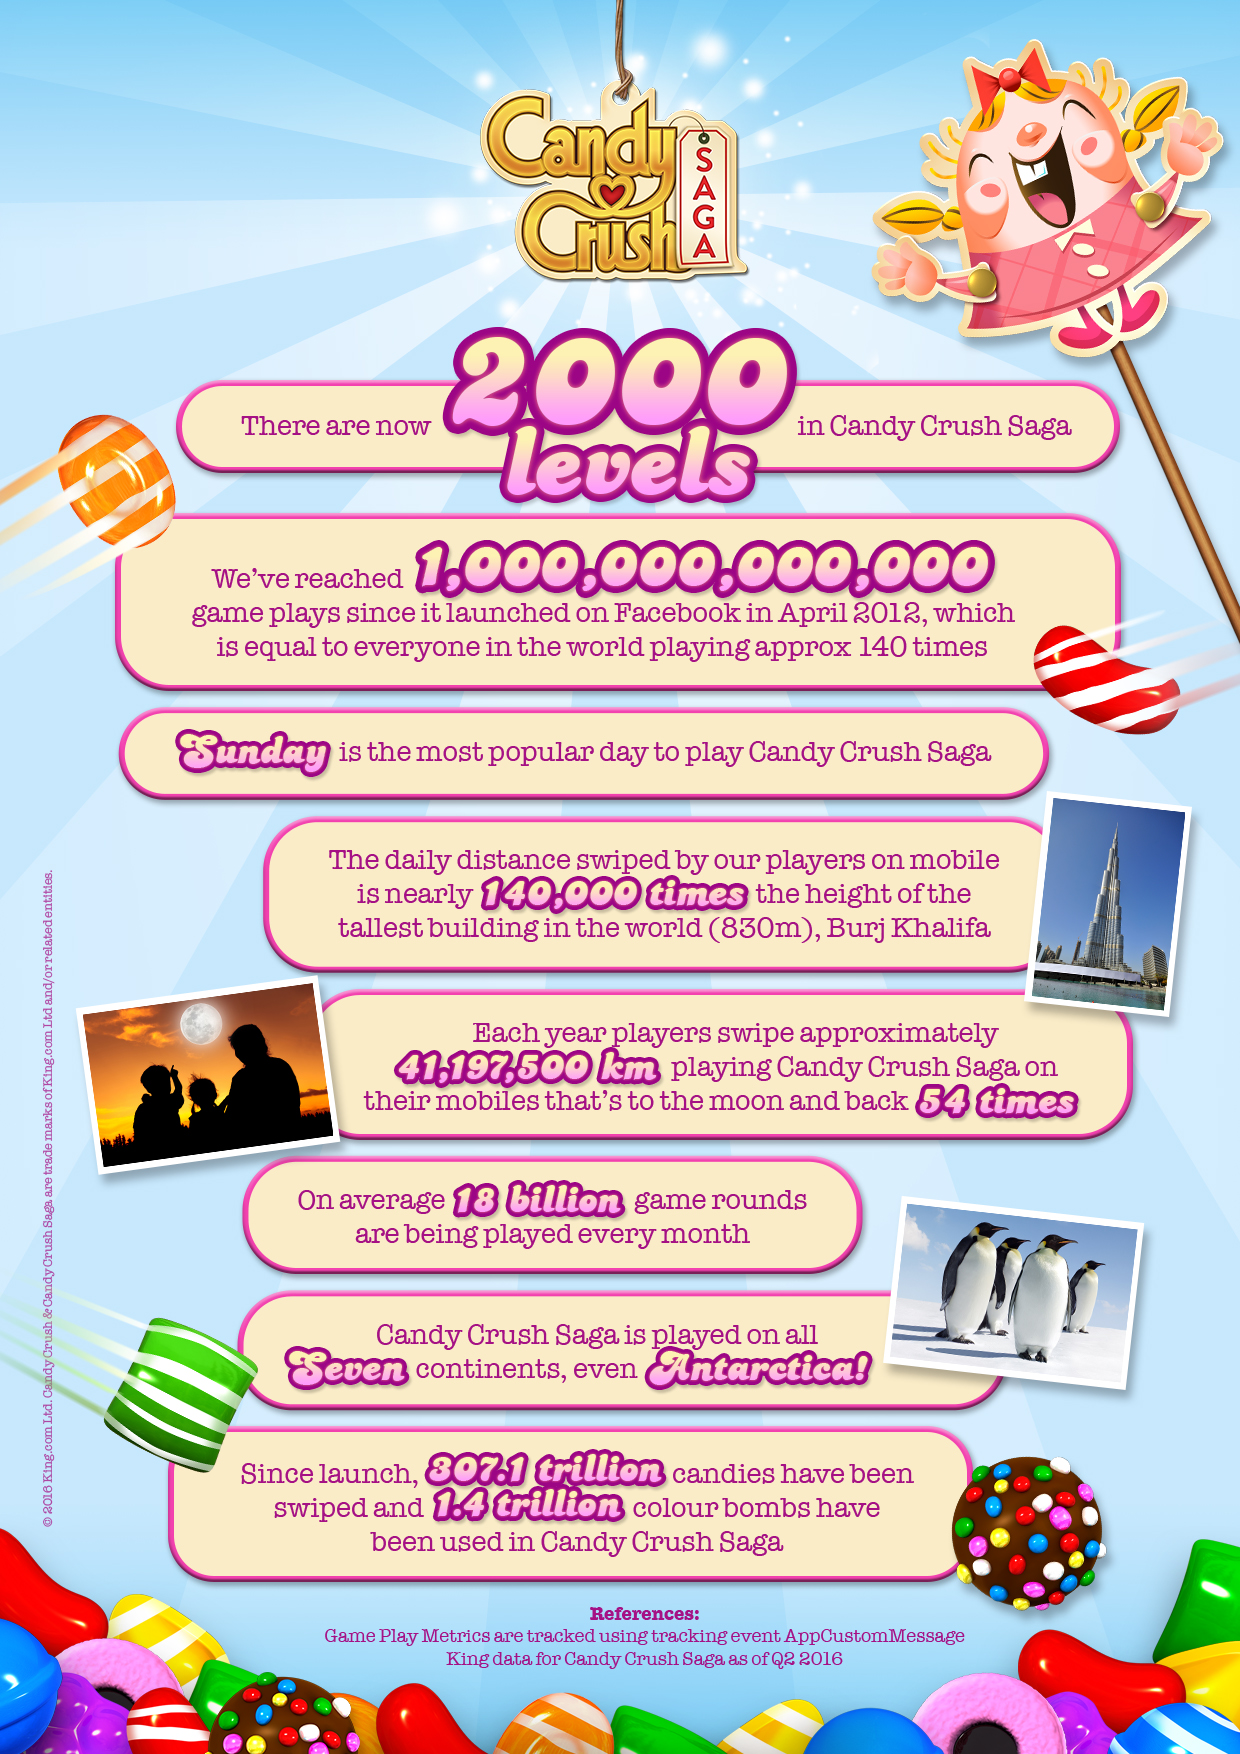 Candy Crush Saga 2000th level infographic.